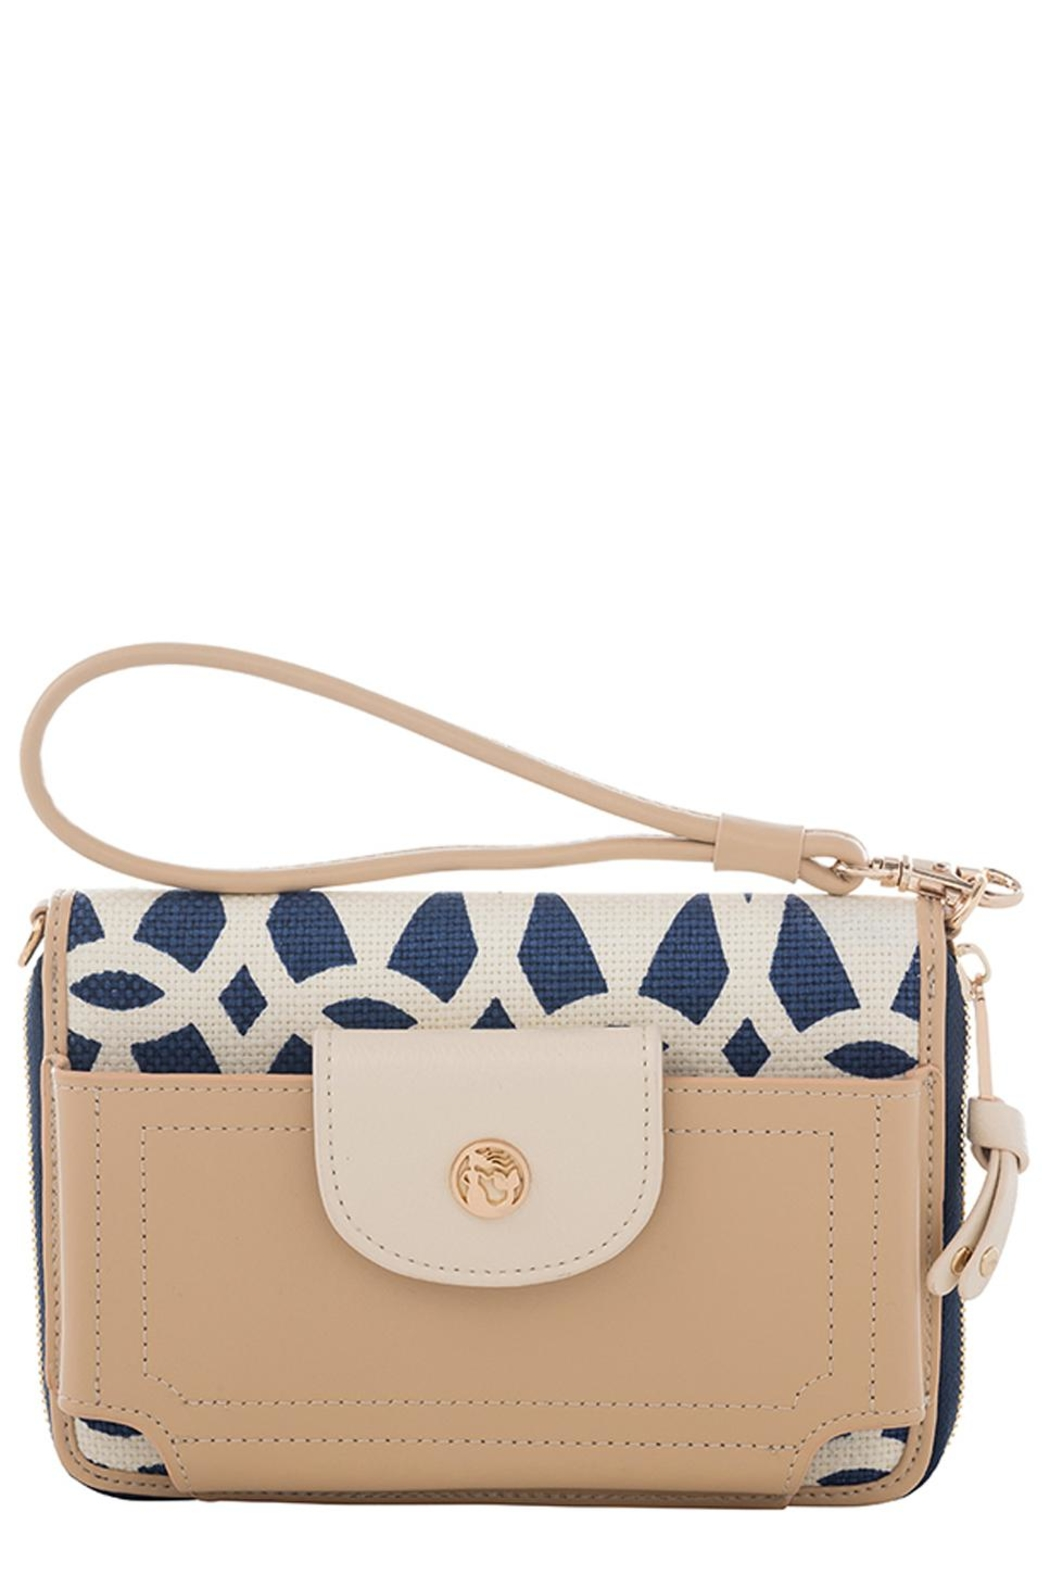 Spartina 449 Tybrisa Multi-Phone Wallet - Main Image